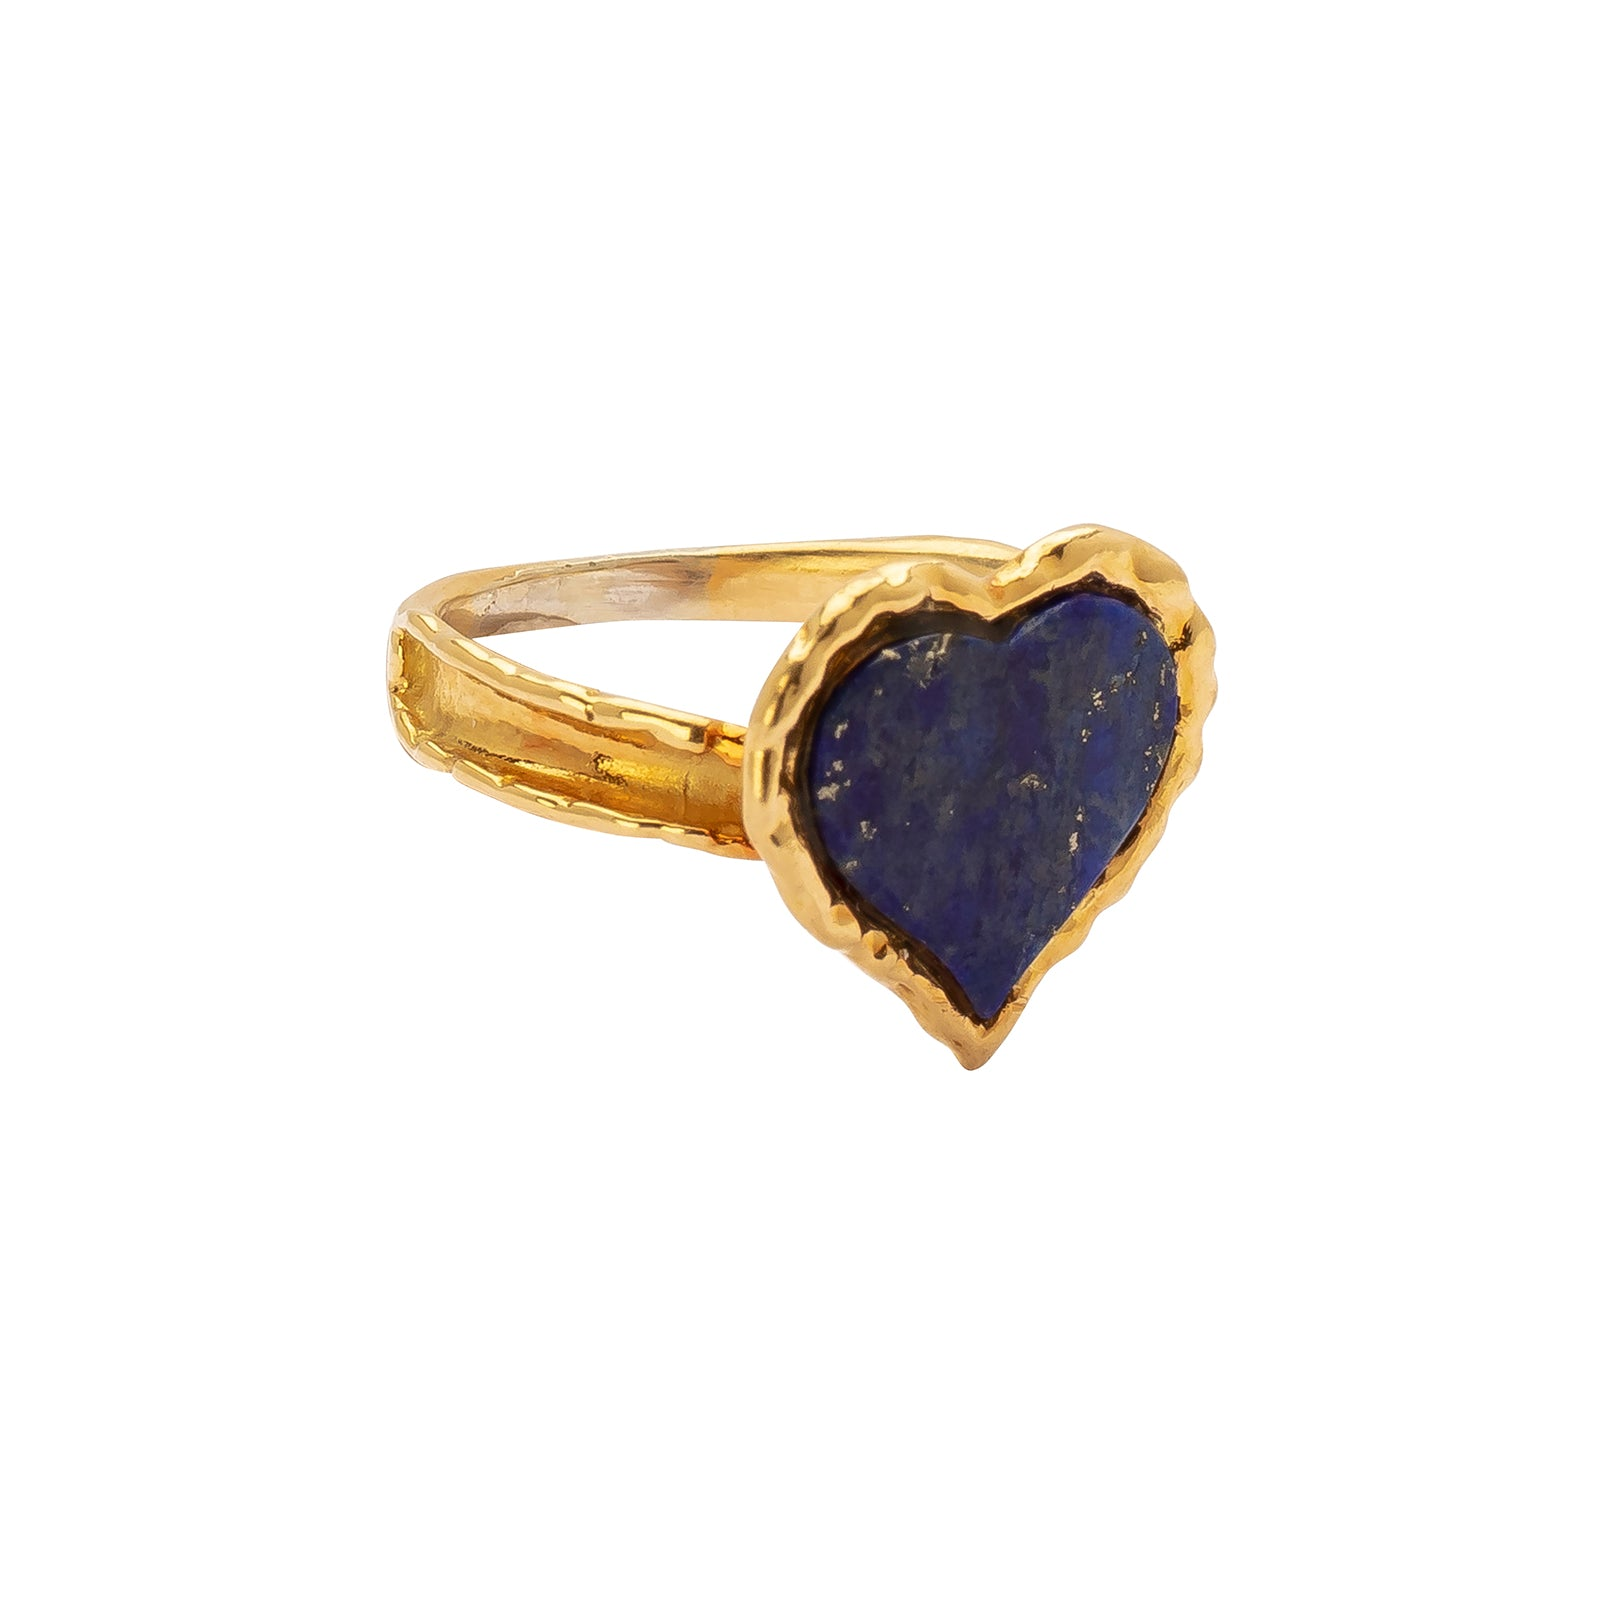 Antique & Vintage Jewelry Heart Shaped Lapis Lazuli Ring - Rings - Broken English Jewelry